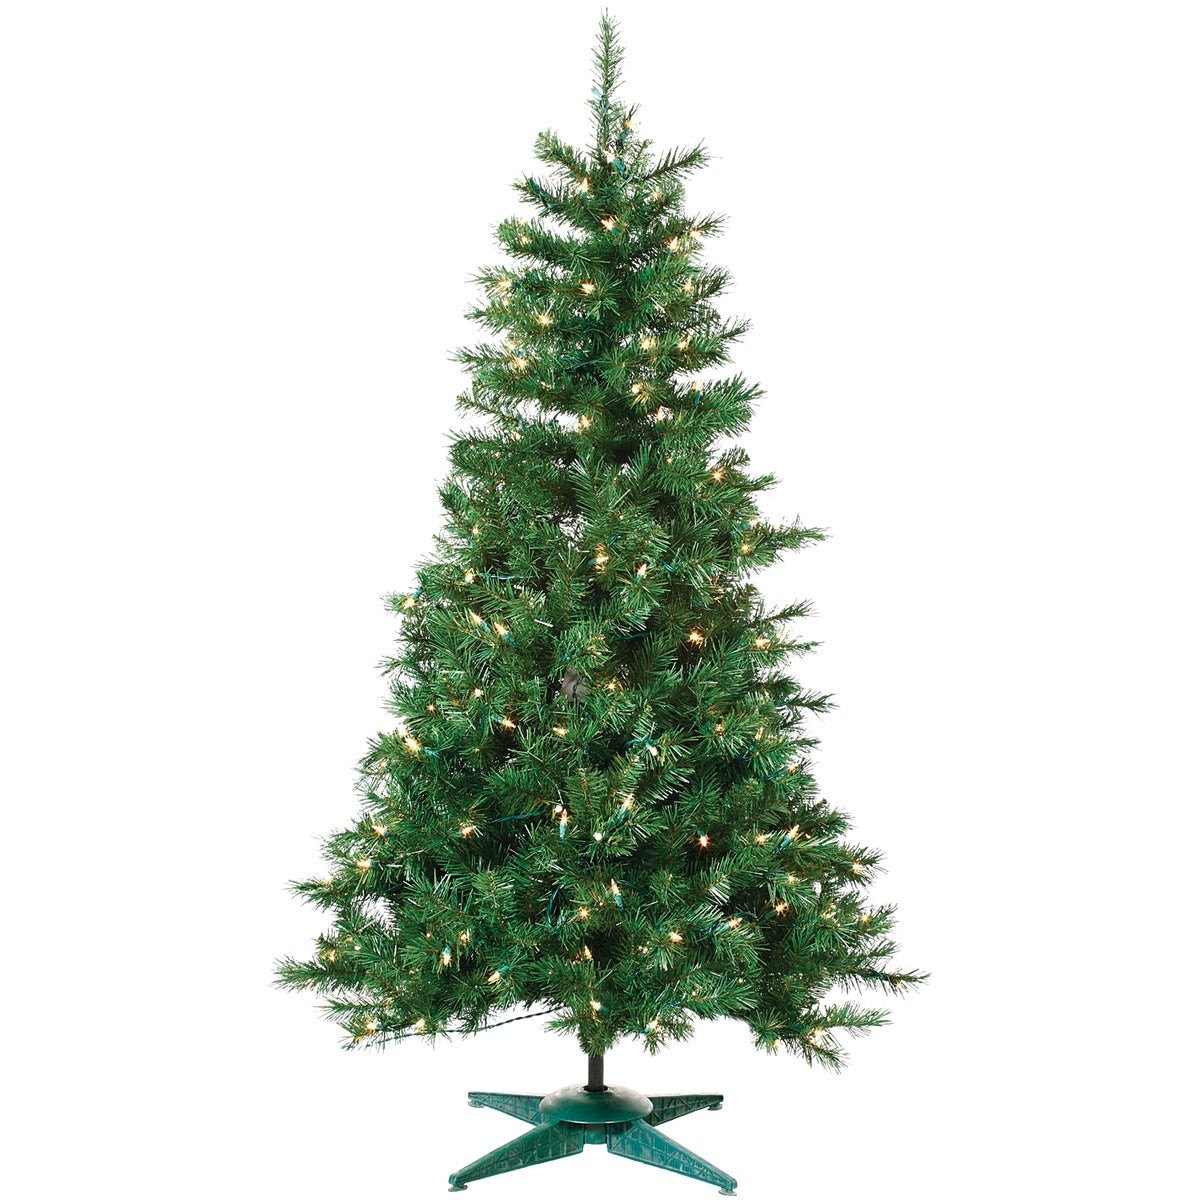 4'P/L COLRAD SPRUCE TREE - 1484-40C by Sterling